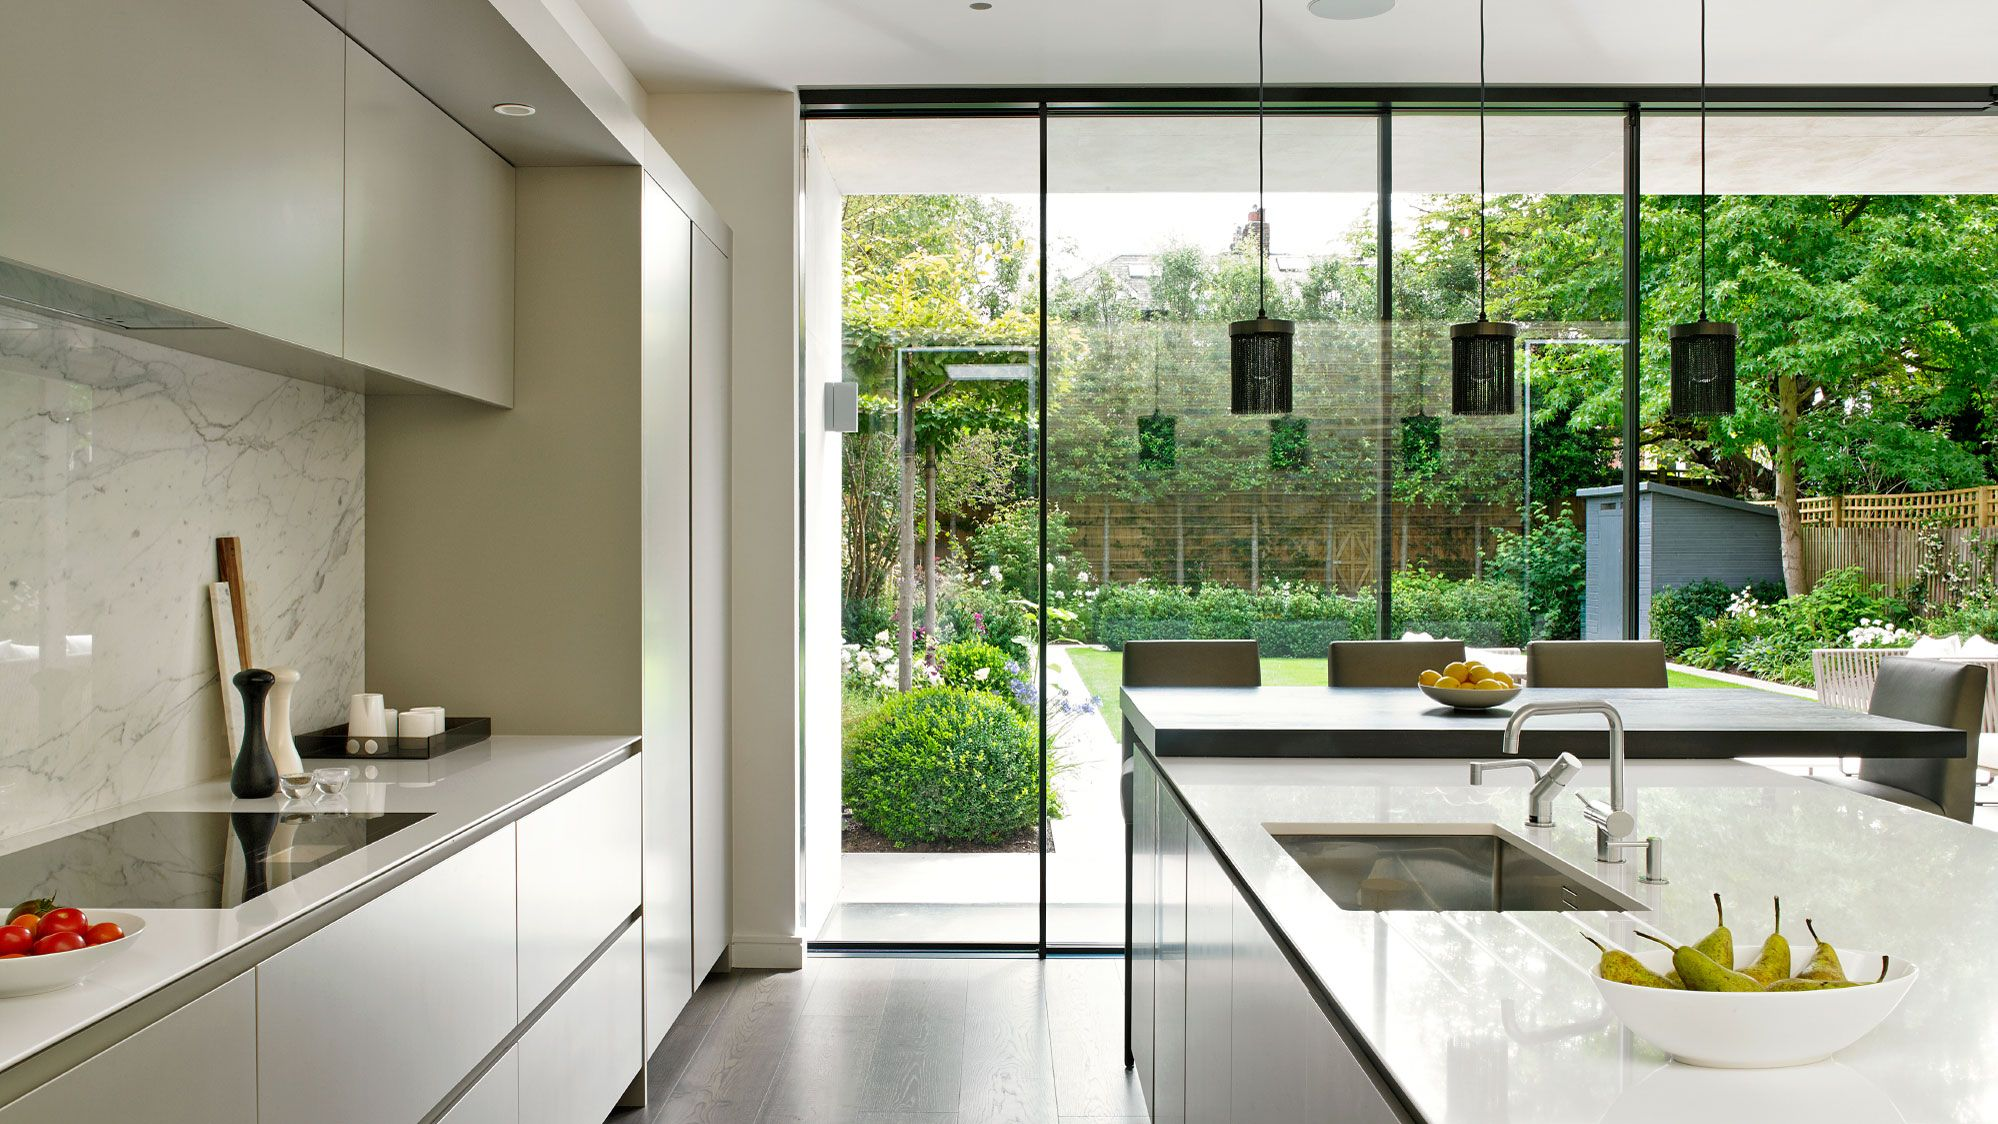 How much does a kitchen extension cost? | Kitchen design ...